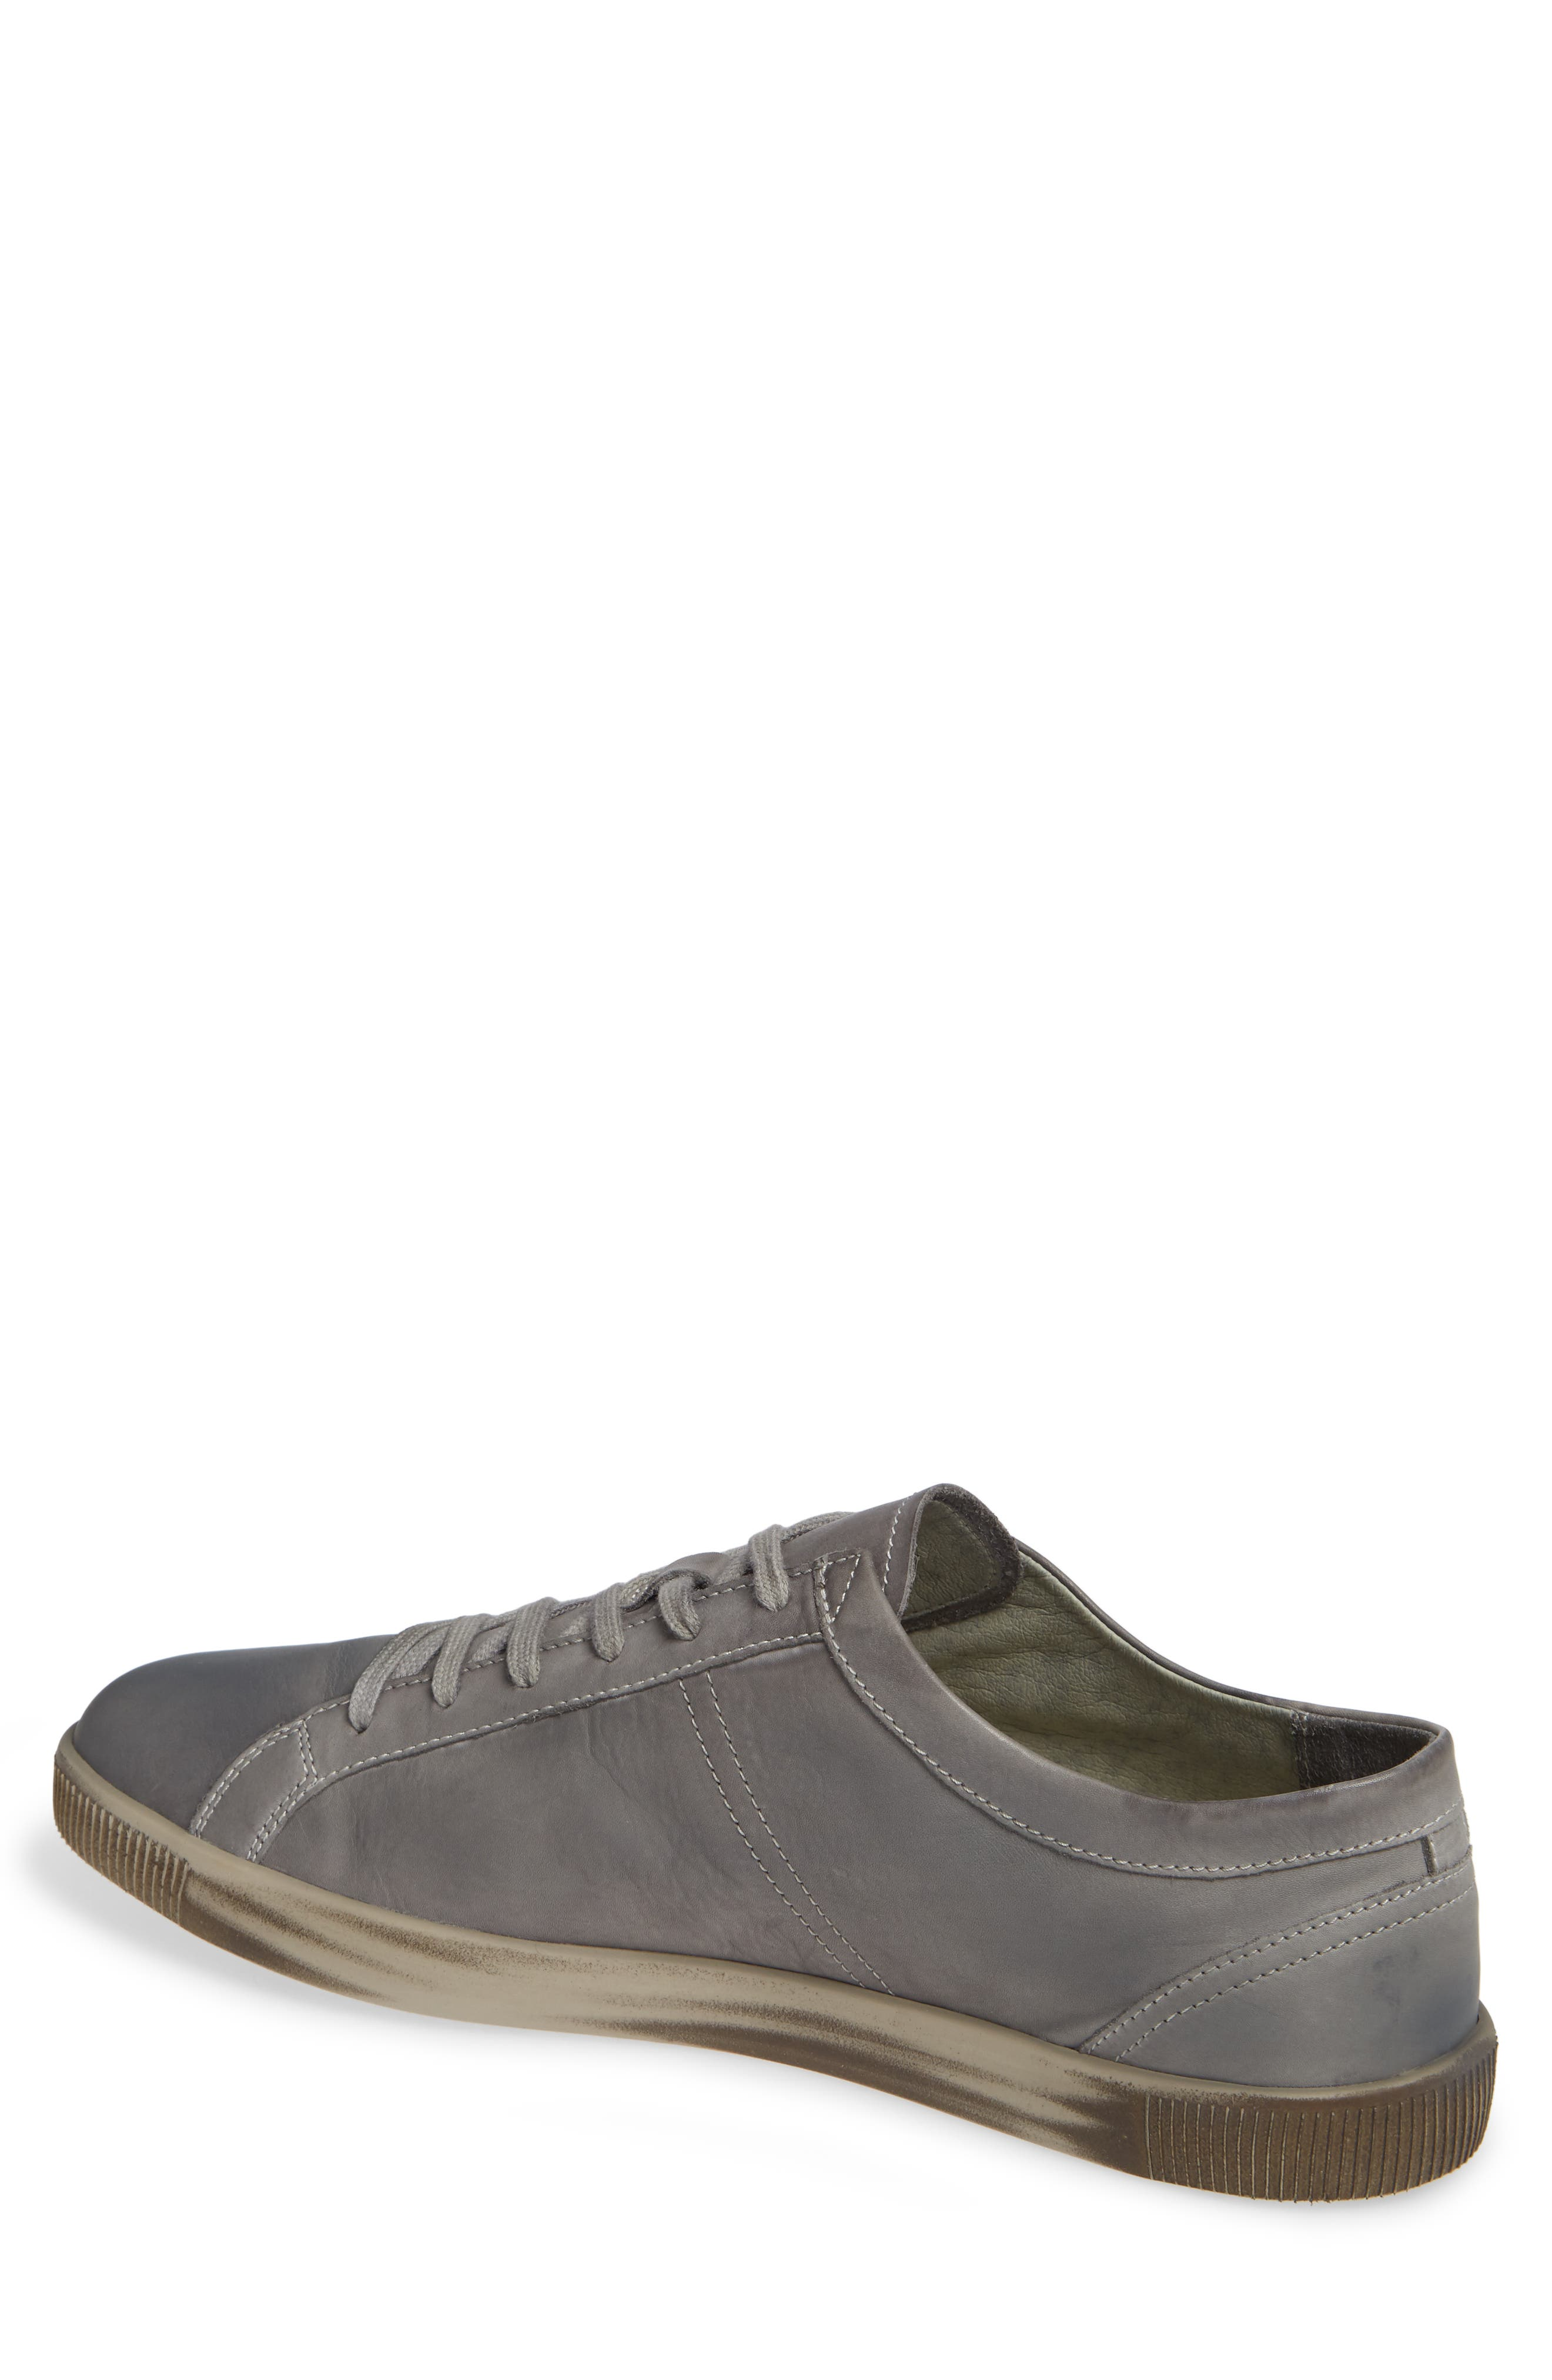 Tom Sneaker,                             Alternate thumbnail 2, color,                             MILITARY WASHED LEATHER